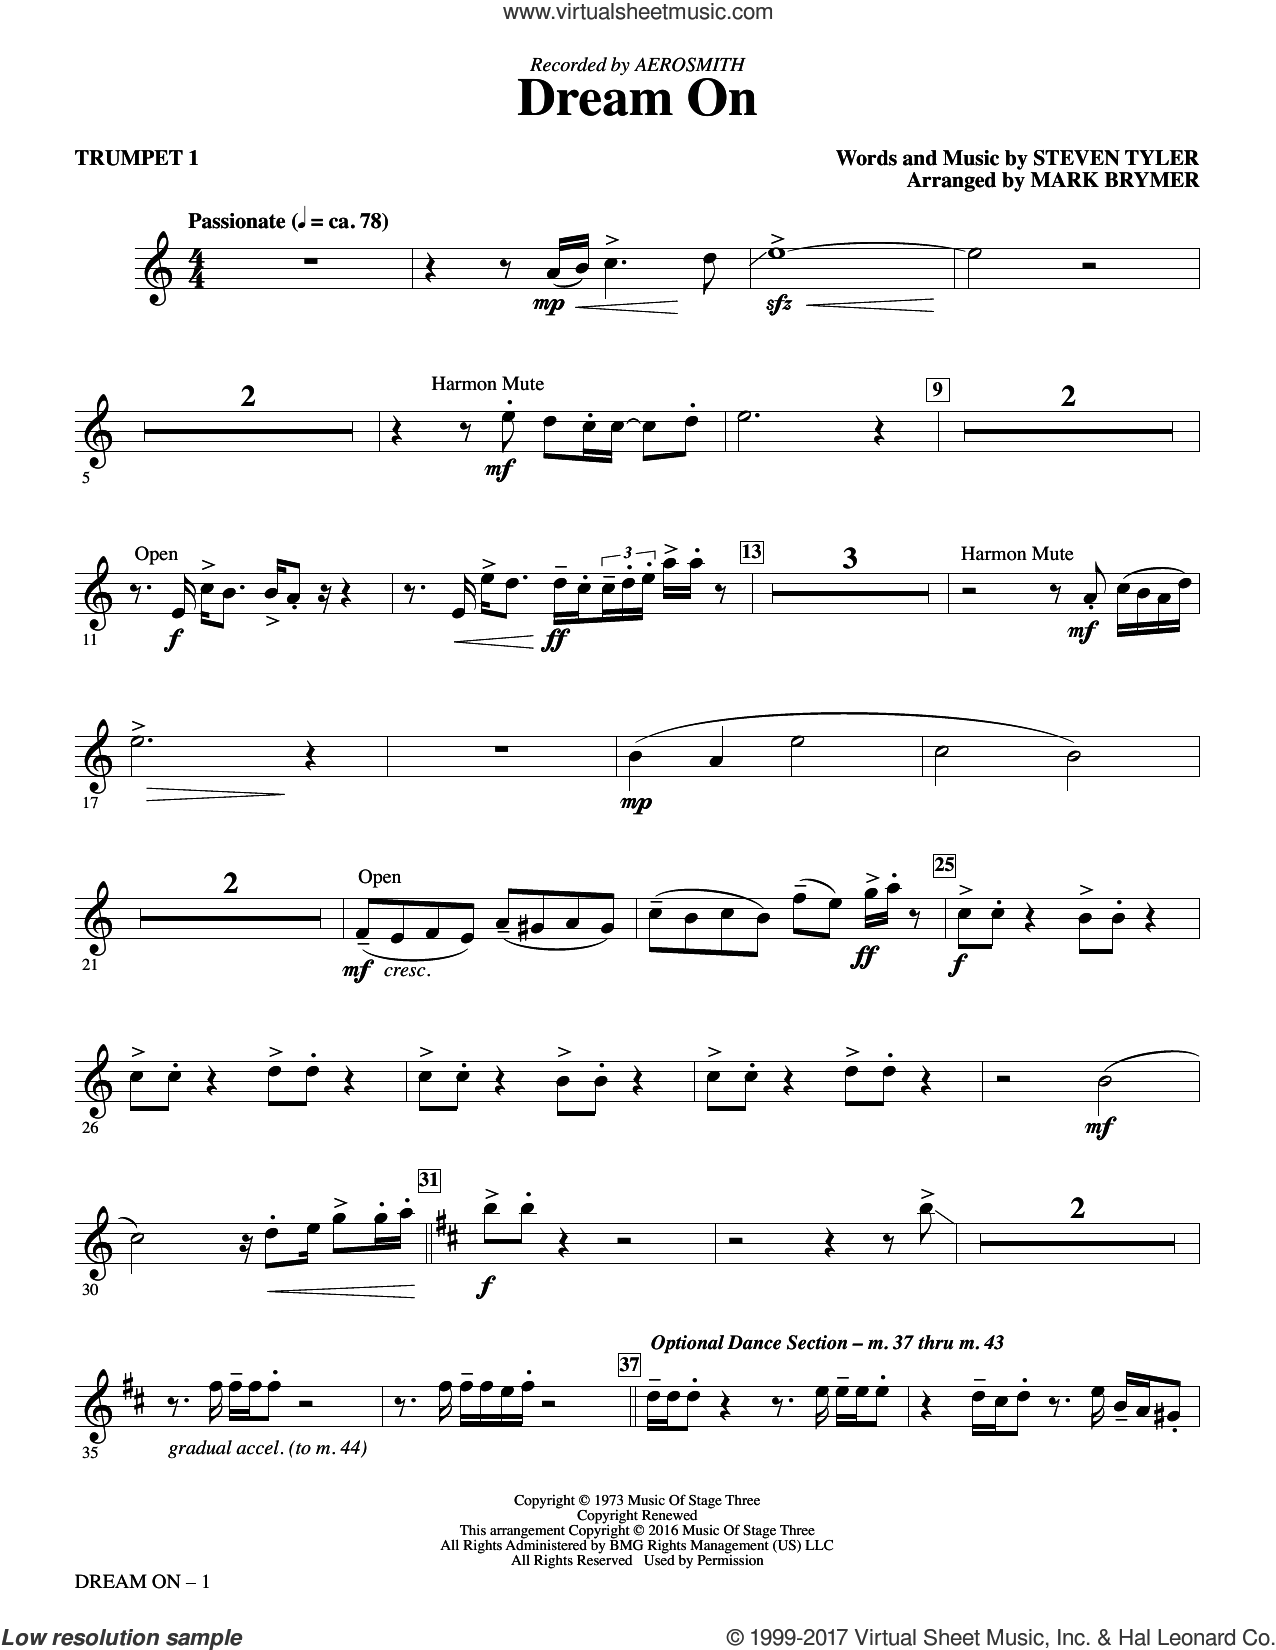 Dream On (complete set of parts) sheet music for orchestra/band by Mark Brymer, Aerosmith and Steven Tyler, intermediate skill level